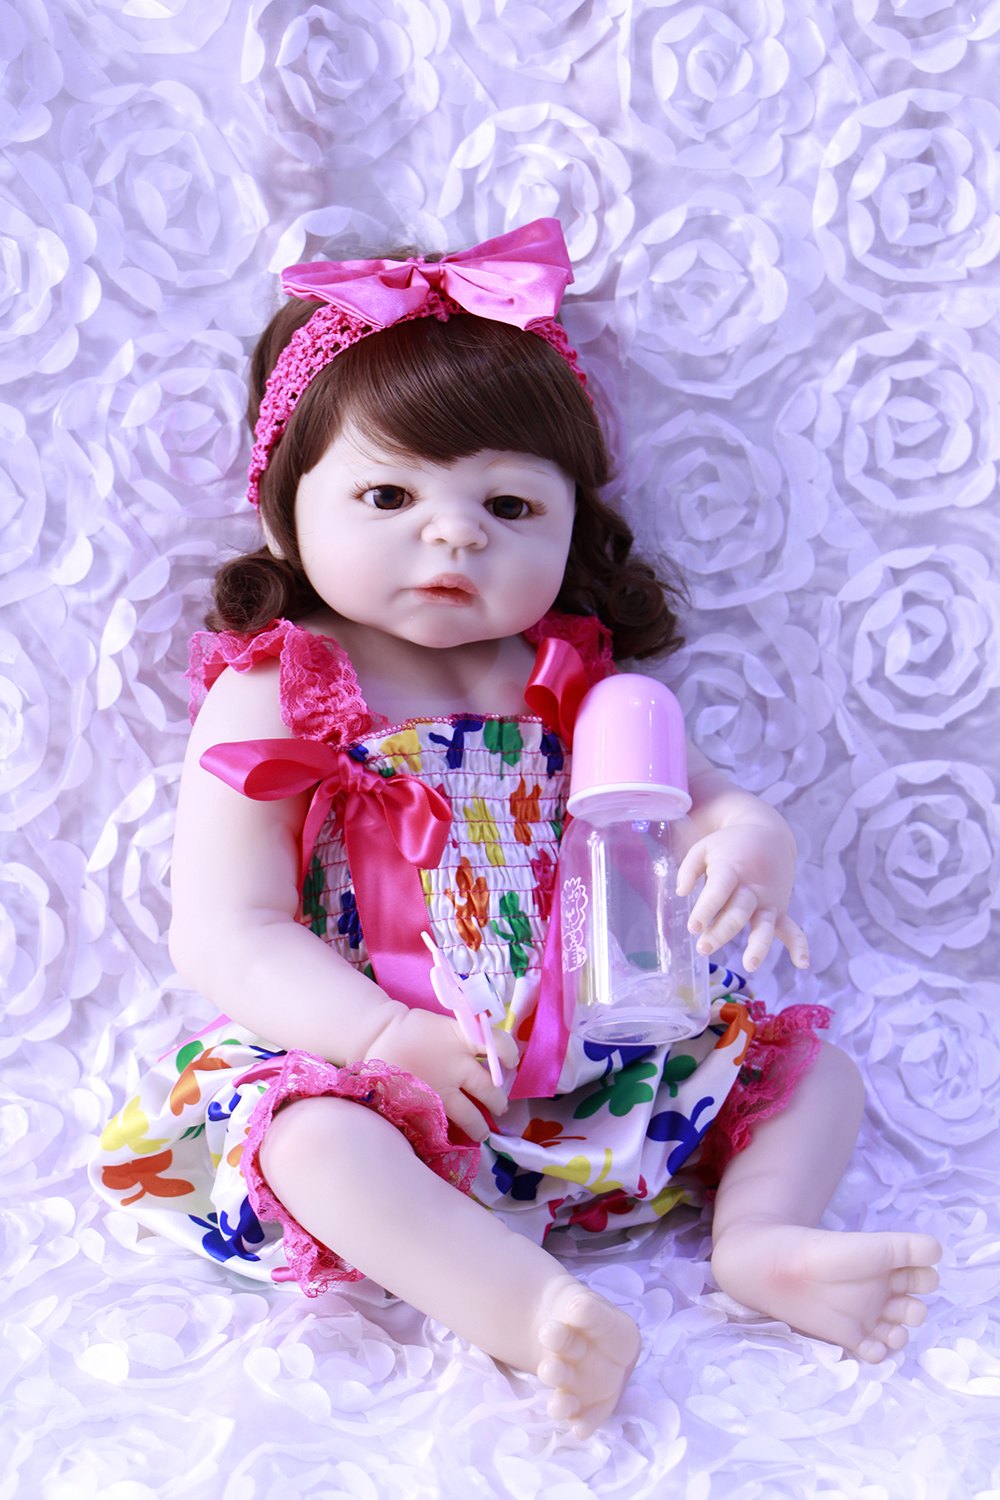 57cm NPK Bebes Reborn Dolls Realistic Full Silicone Baby girl Doll In Cute Clothes Alive Baby Dolls As Girls Playmate57cm NPK Bebes Reborn Dolls Realistic Full Silicone Baby girl Doll In Cute Clothes Alive Baby Dolls As Girls Playmate